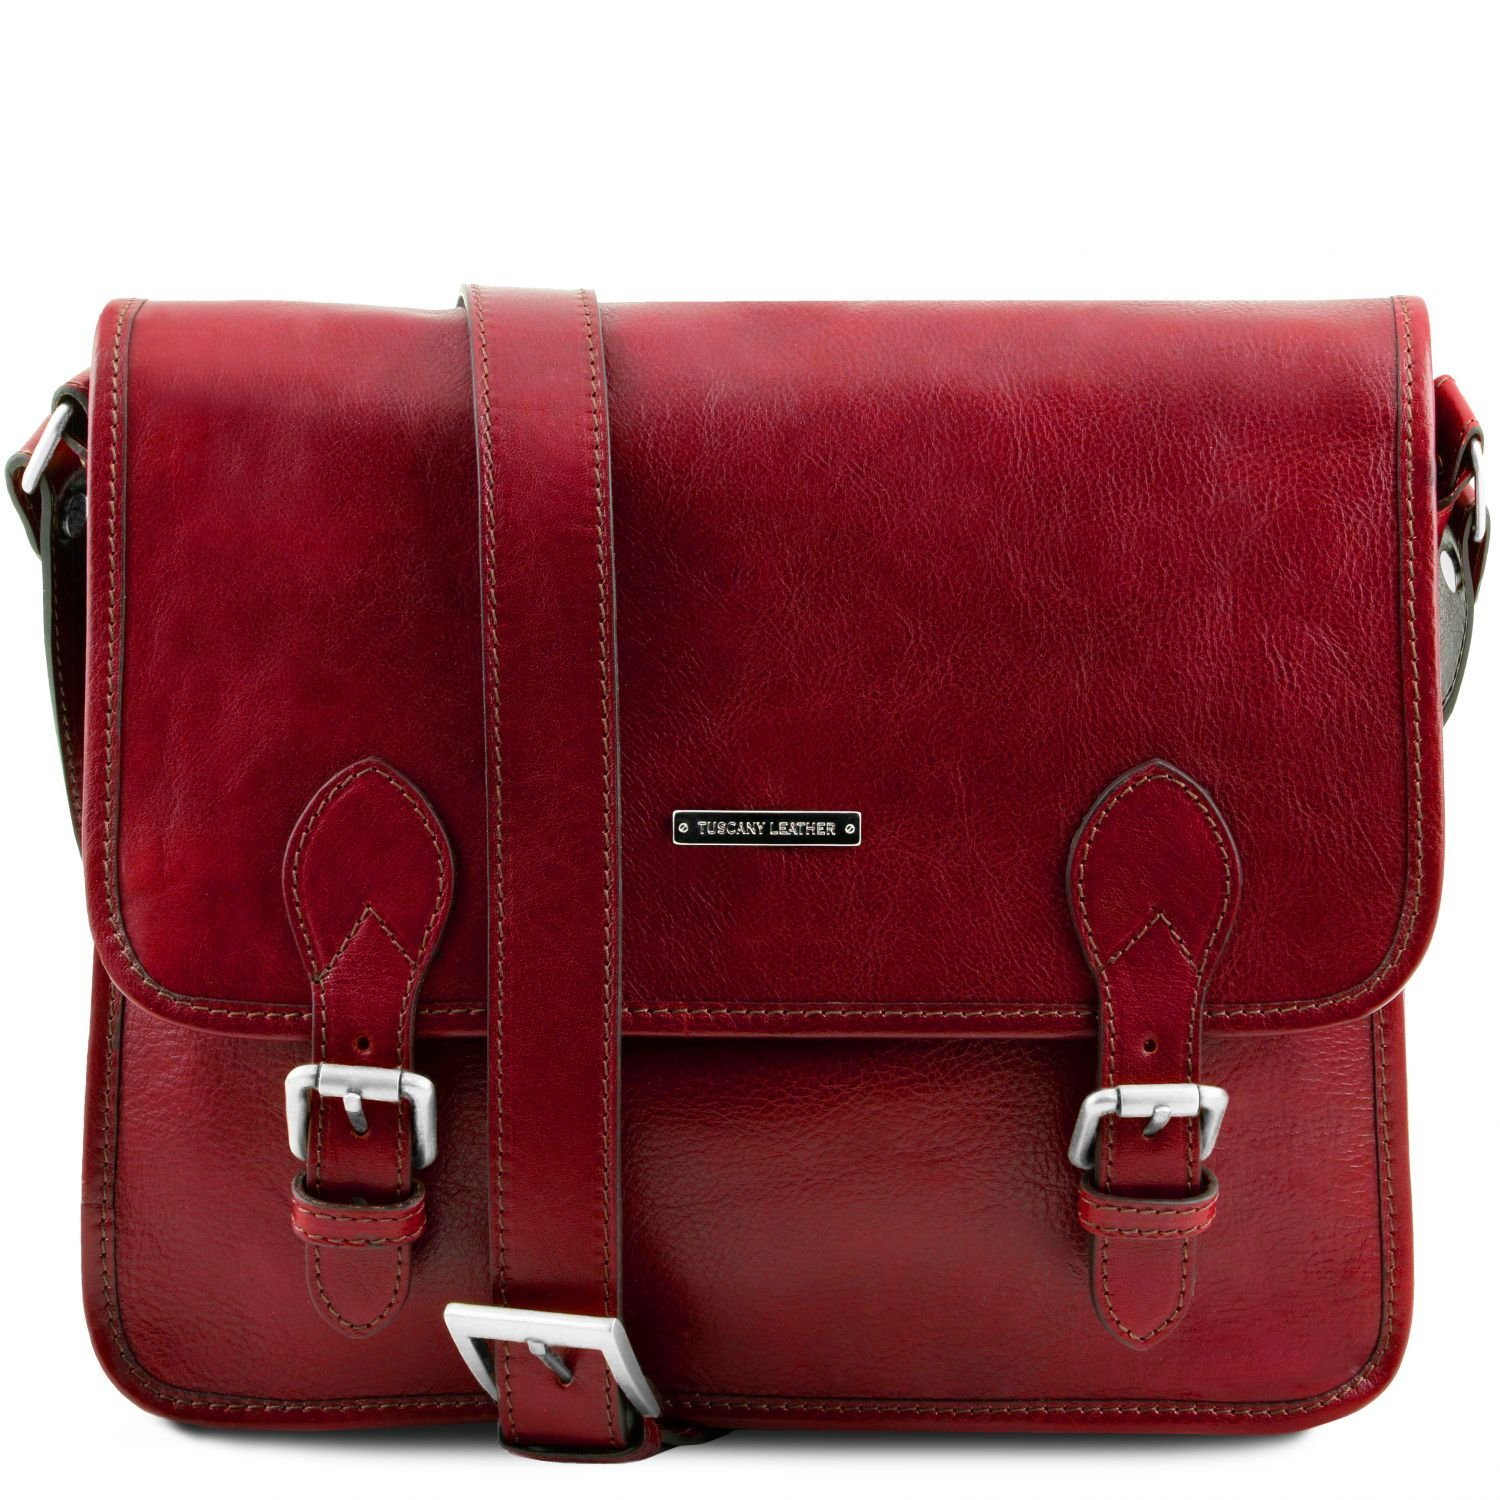 Tuscany Leather TL Postman Leather messenger bag Red